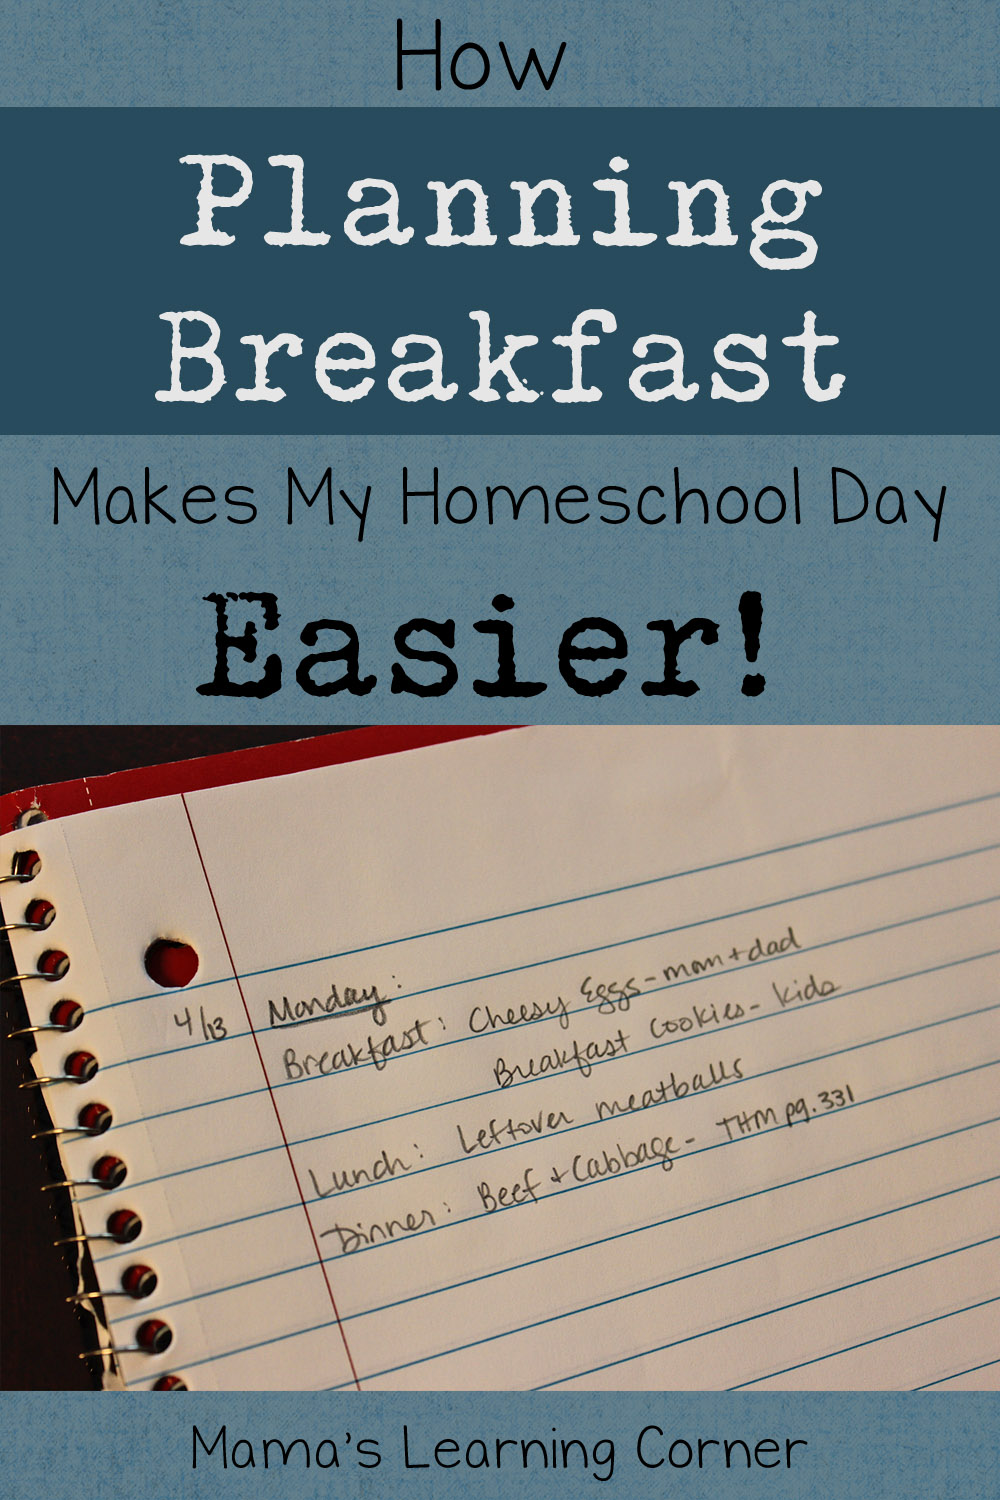 How Meal Planning Breakfast Makes My Homeschool Day Easier plus tips and ideas!